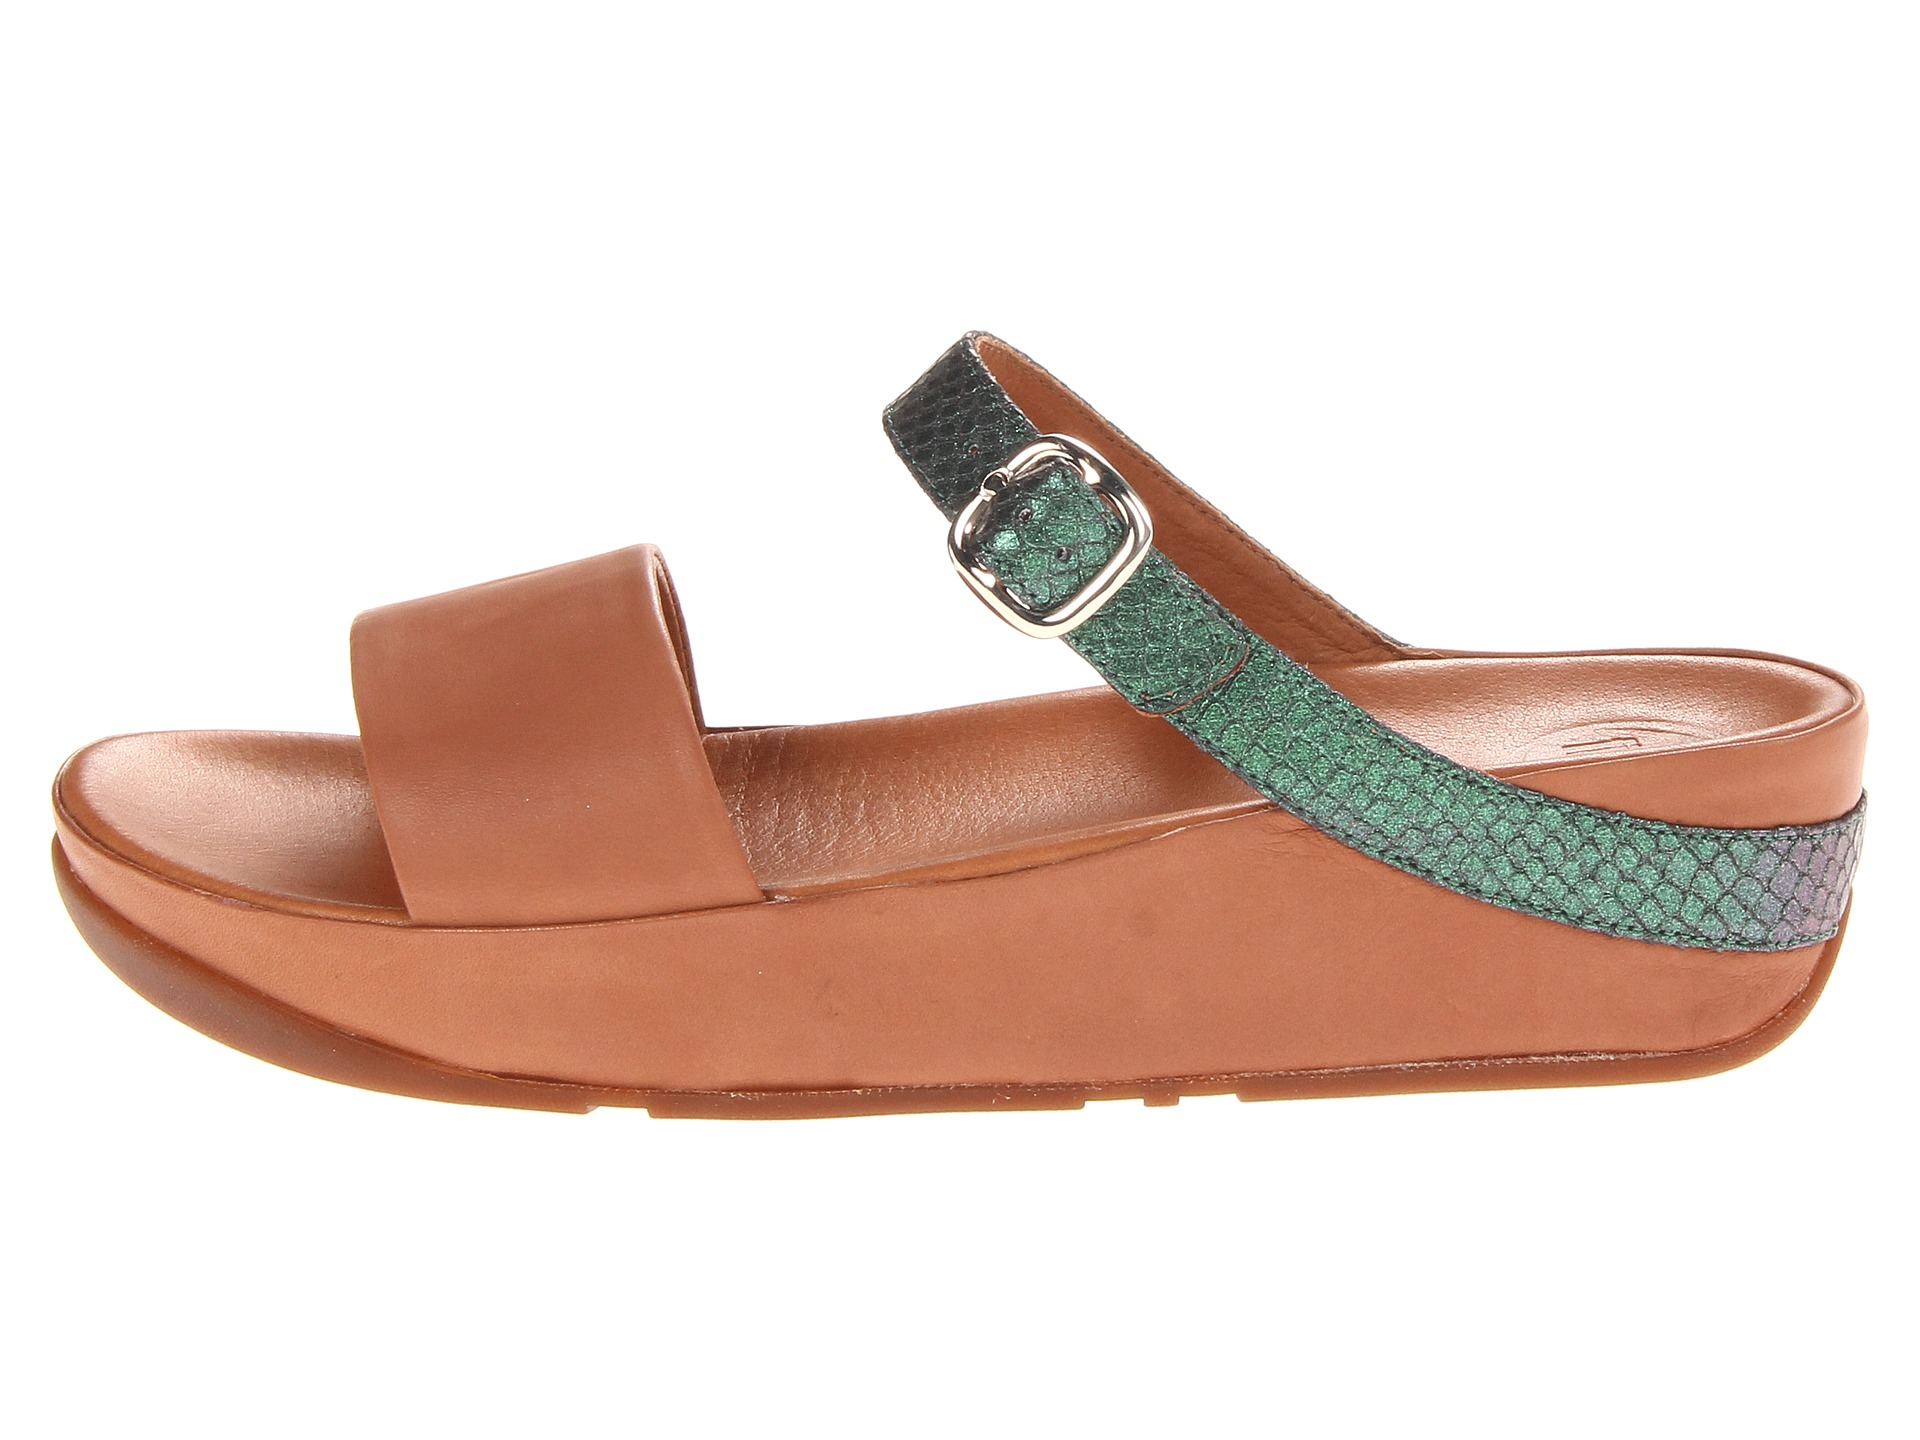 67a6dbb5e64d41 Lyst - Fitflop Souza in Green